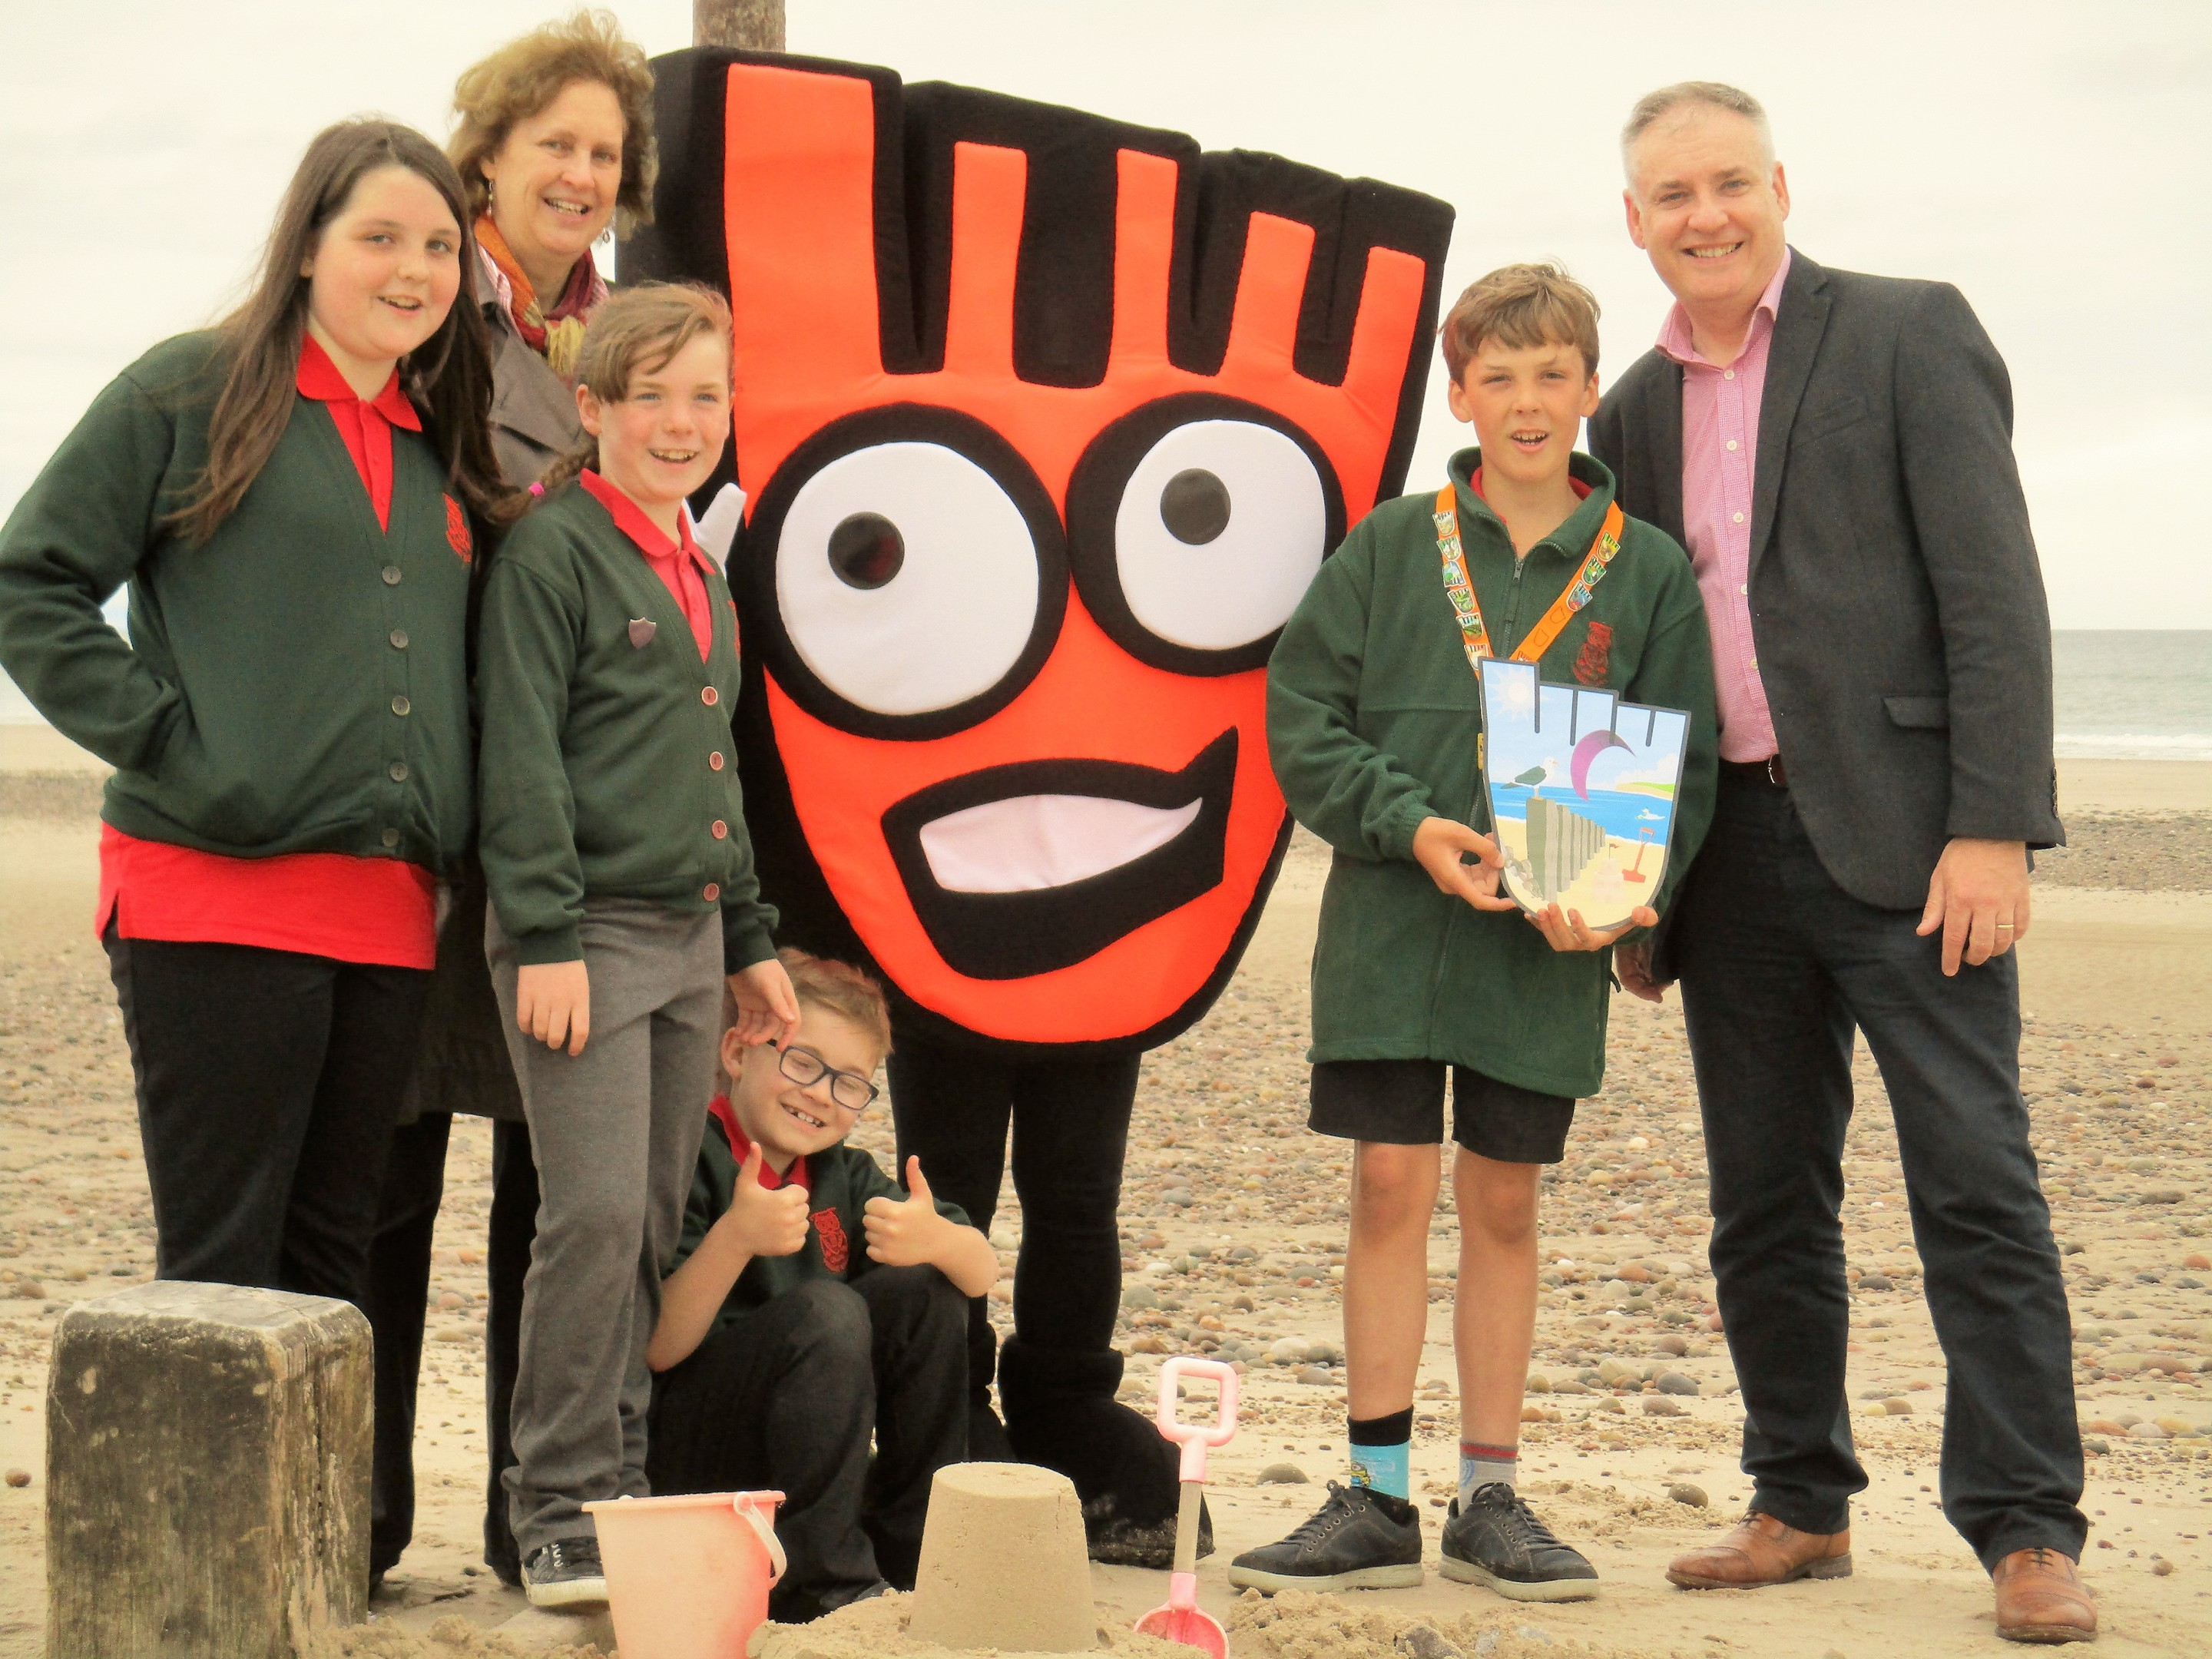 Sam Robbins was joined by classmates from Kinloss School and Moray MSP Richard Lochhead at Findhorn beach, the spot that inspired the drawing.